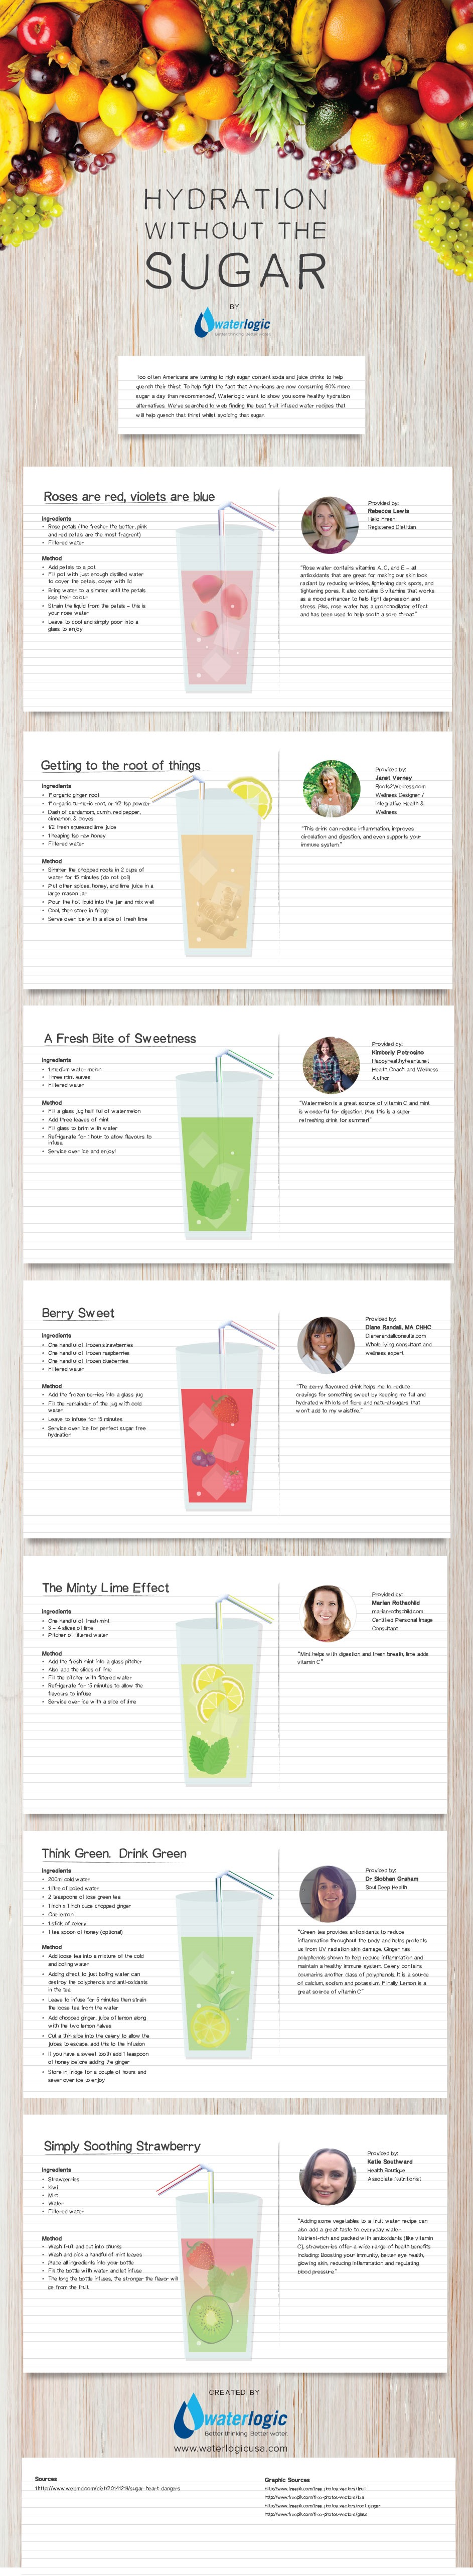 Check out these recipes at: http://www.waterlogic.com/en-us/resources-blog/hydration-without-the-sugar/